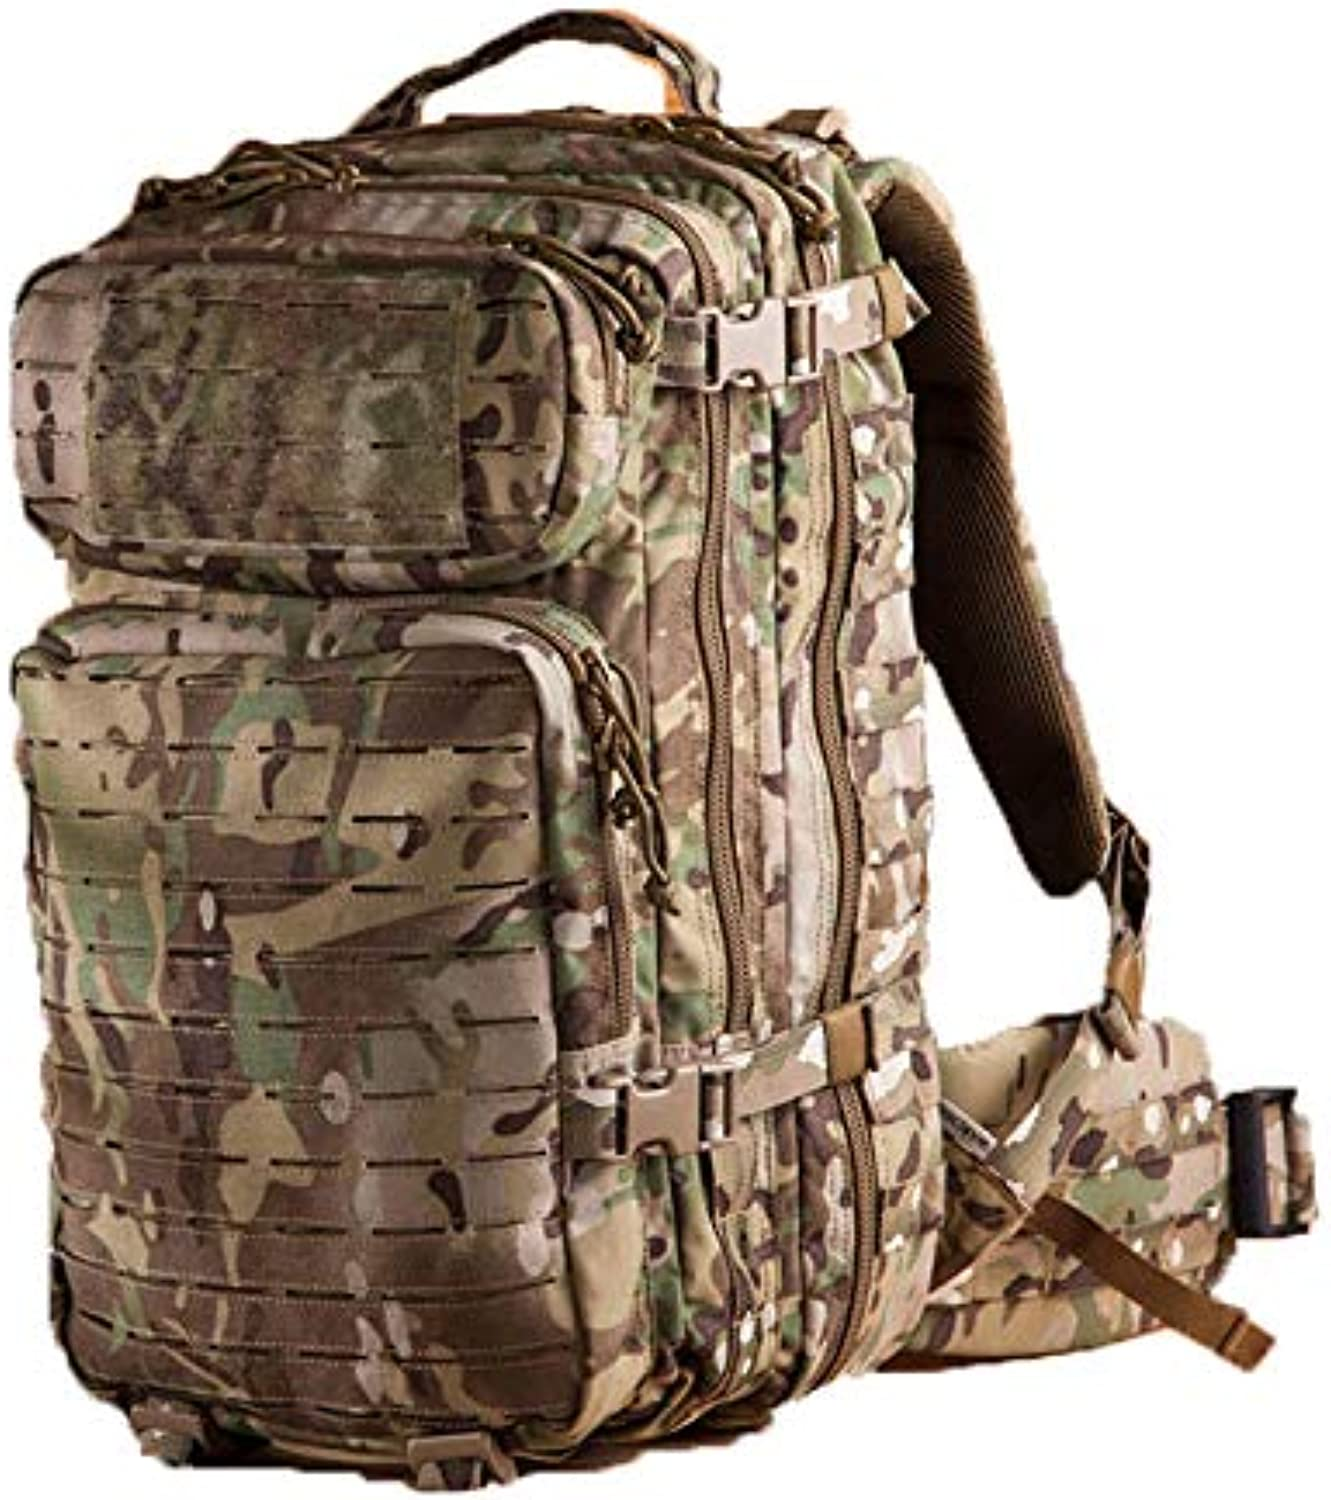 Assault Backpack Removable Operator Pack Backpack Military Equipment Hunting Bag